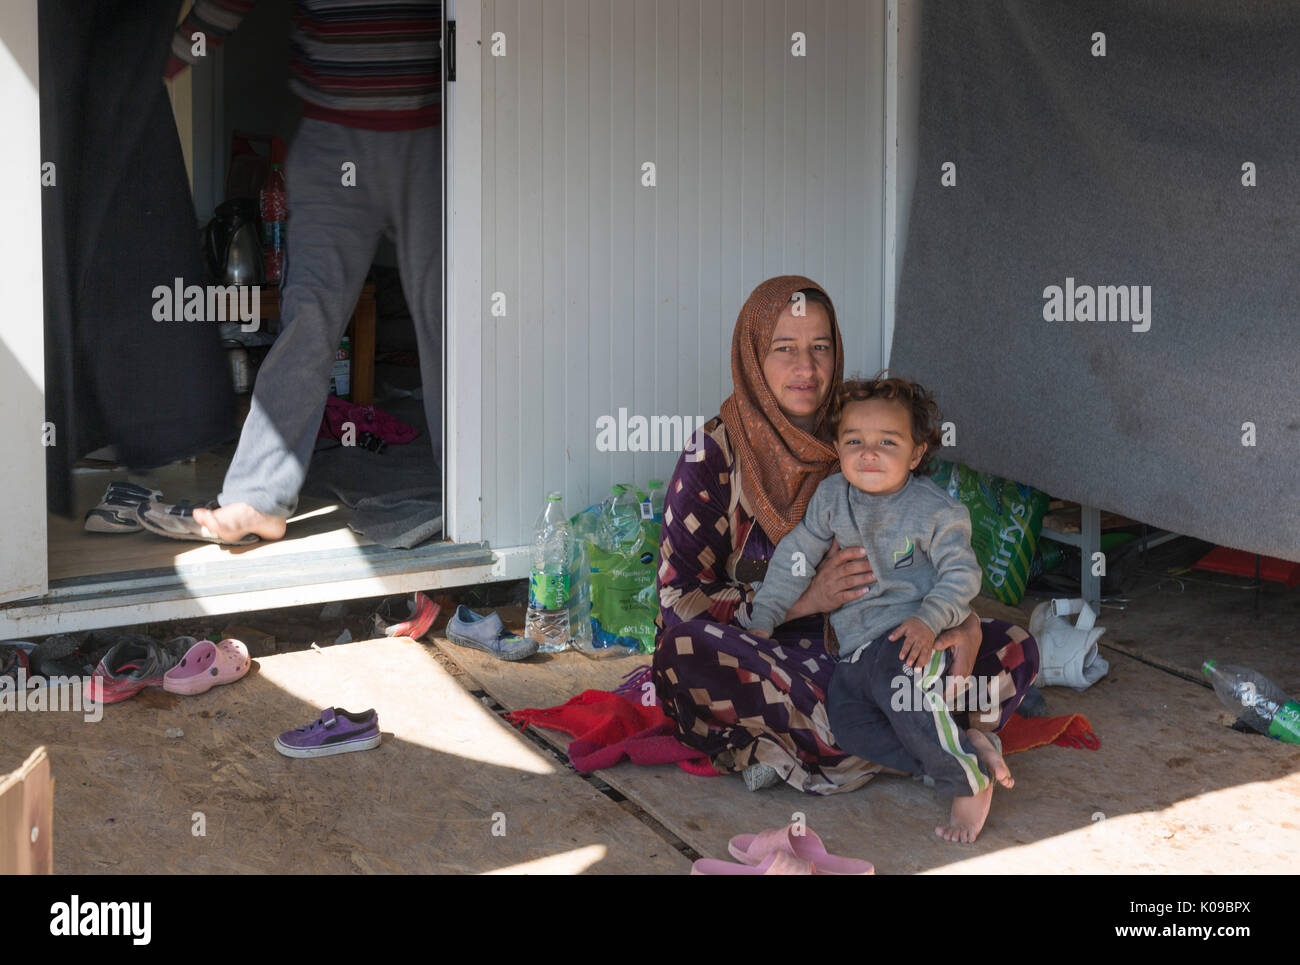 A refugee mother sits in the shade of her prefabricated home in the Ritsona refugee camp for Syrians in Greece. Her husband's legs in doorway behind. - Stock Image